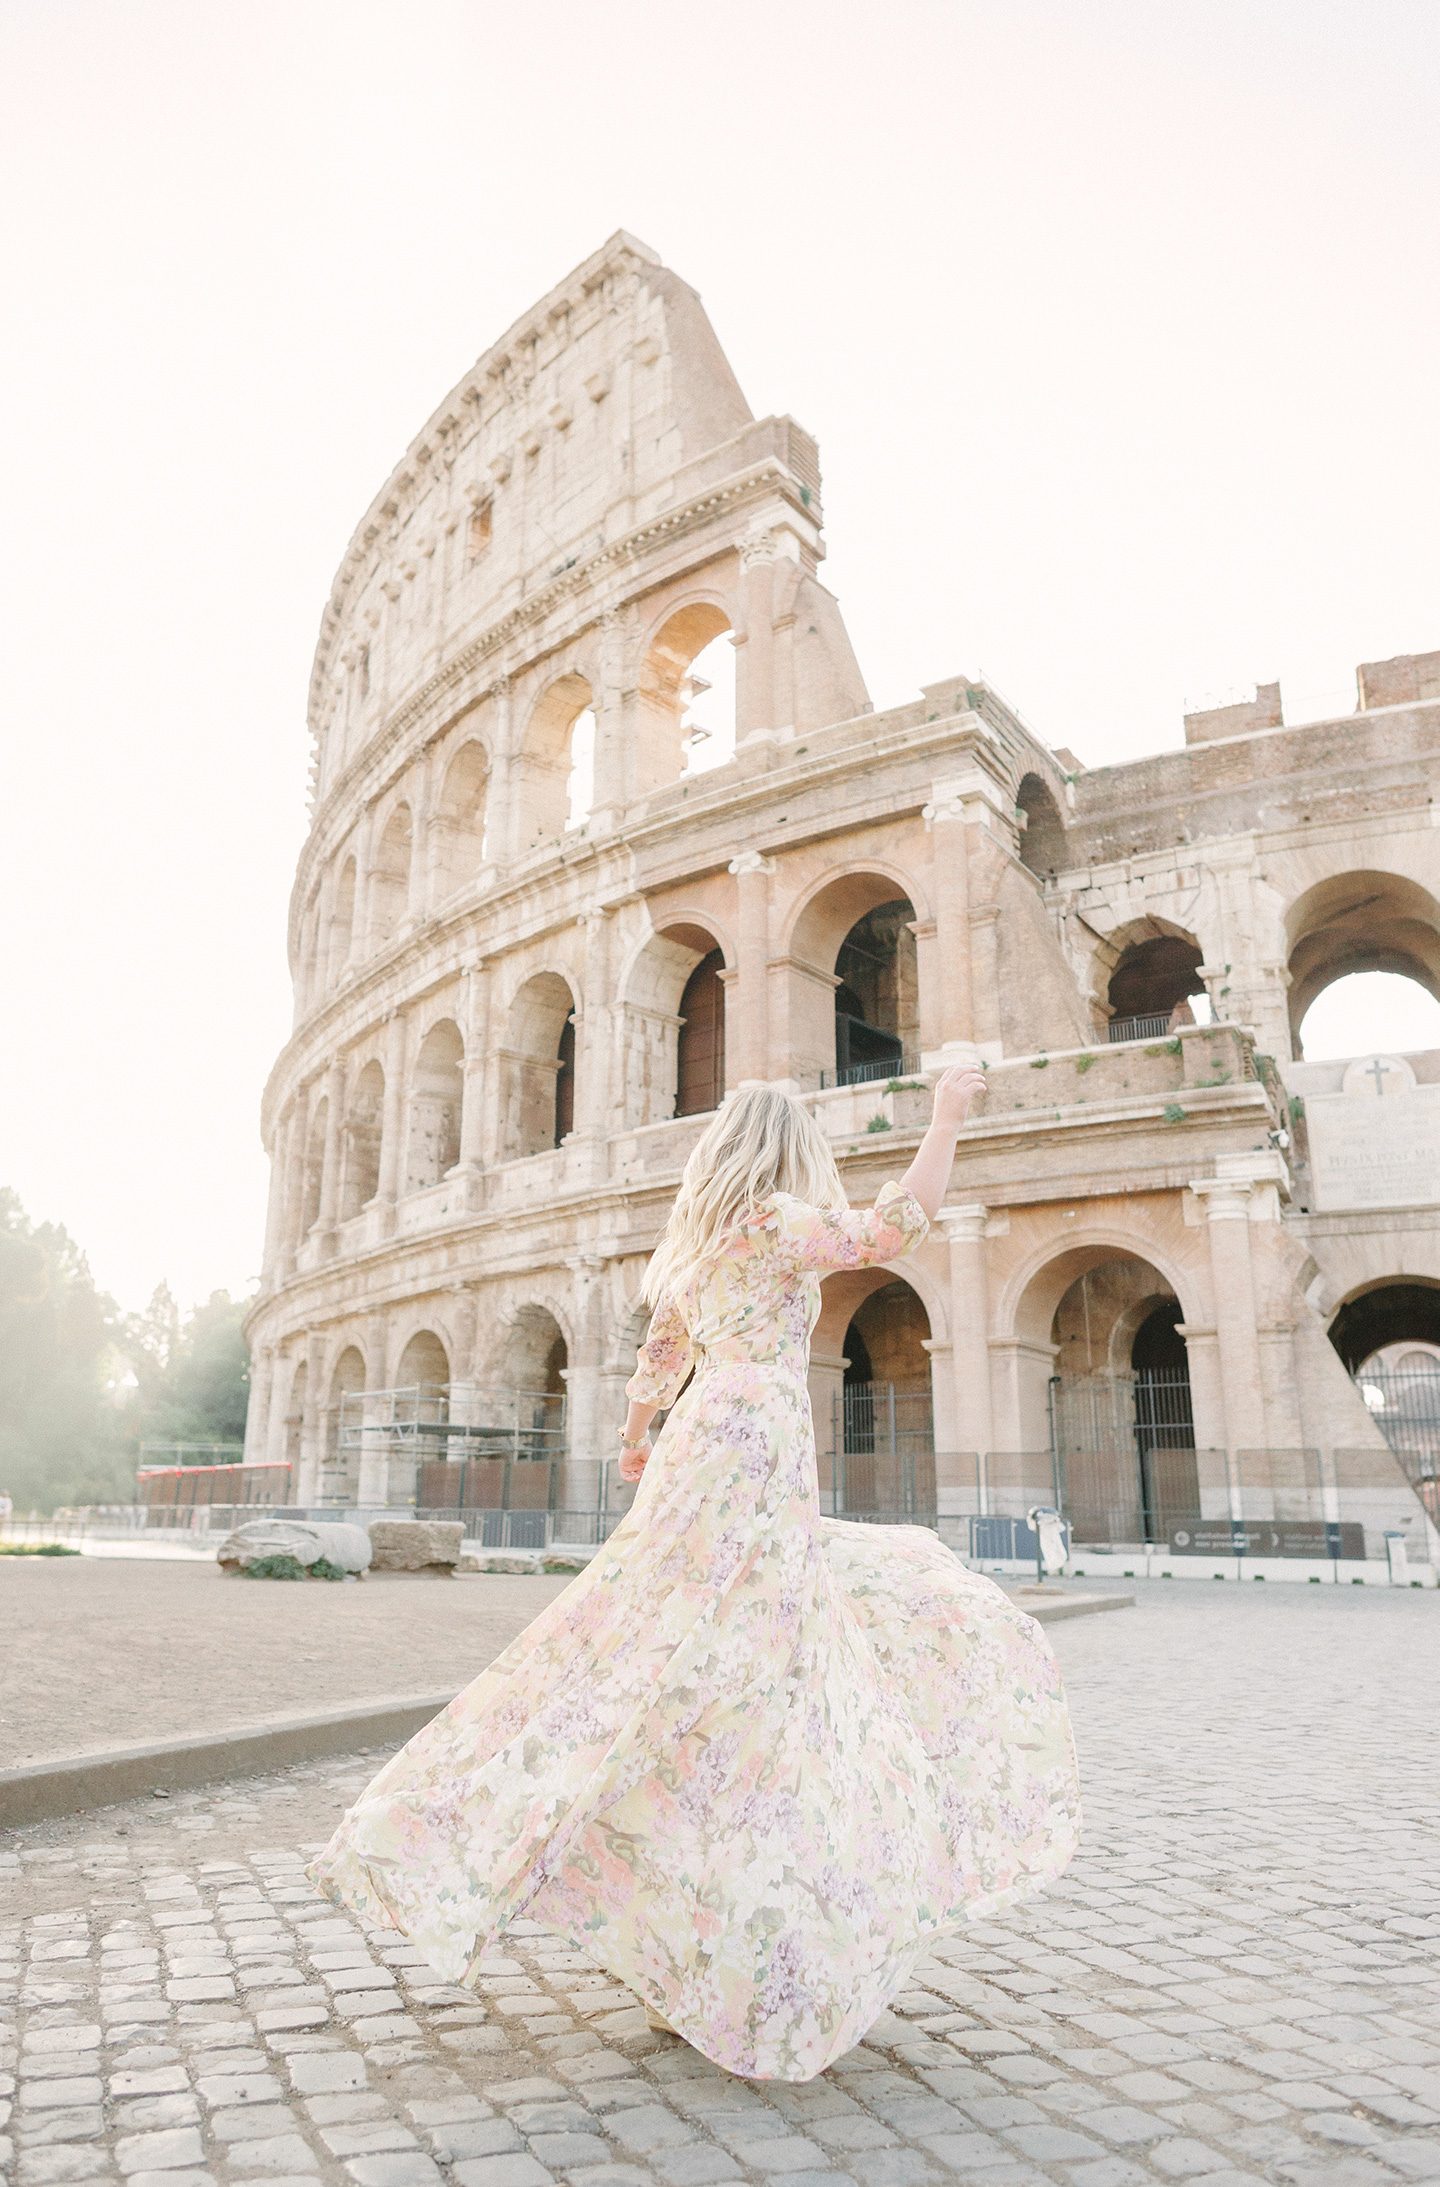 Yumi Kim at the Colosseum